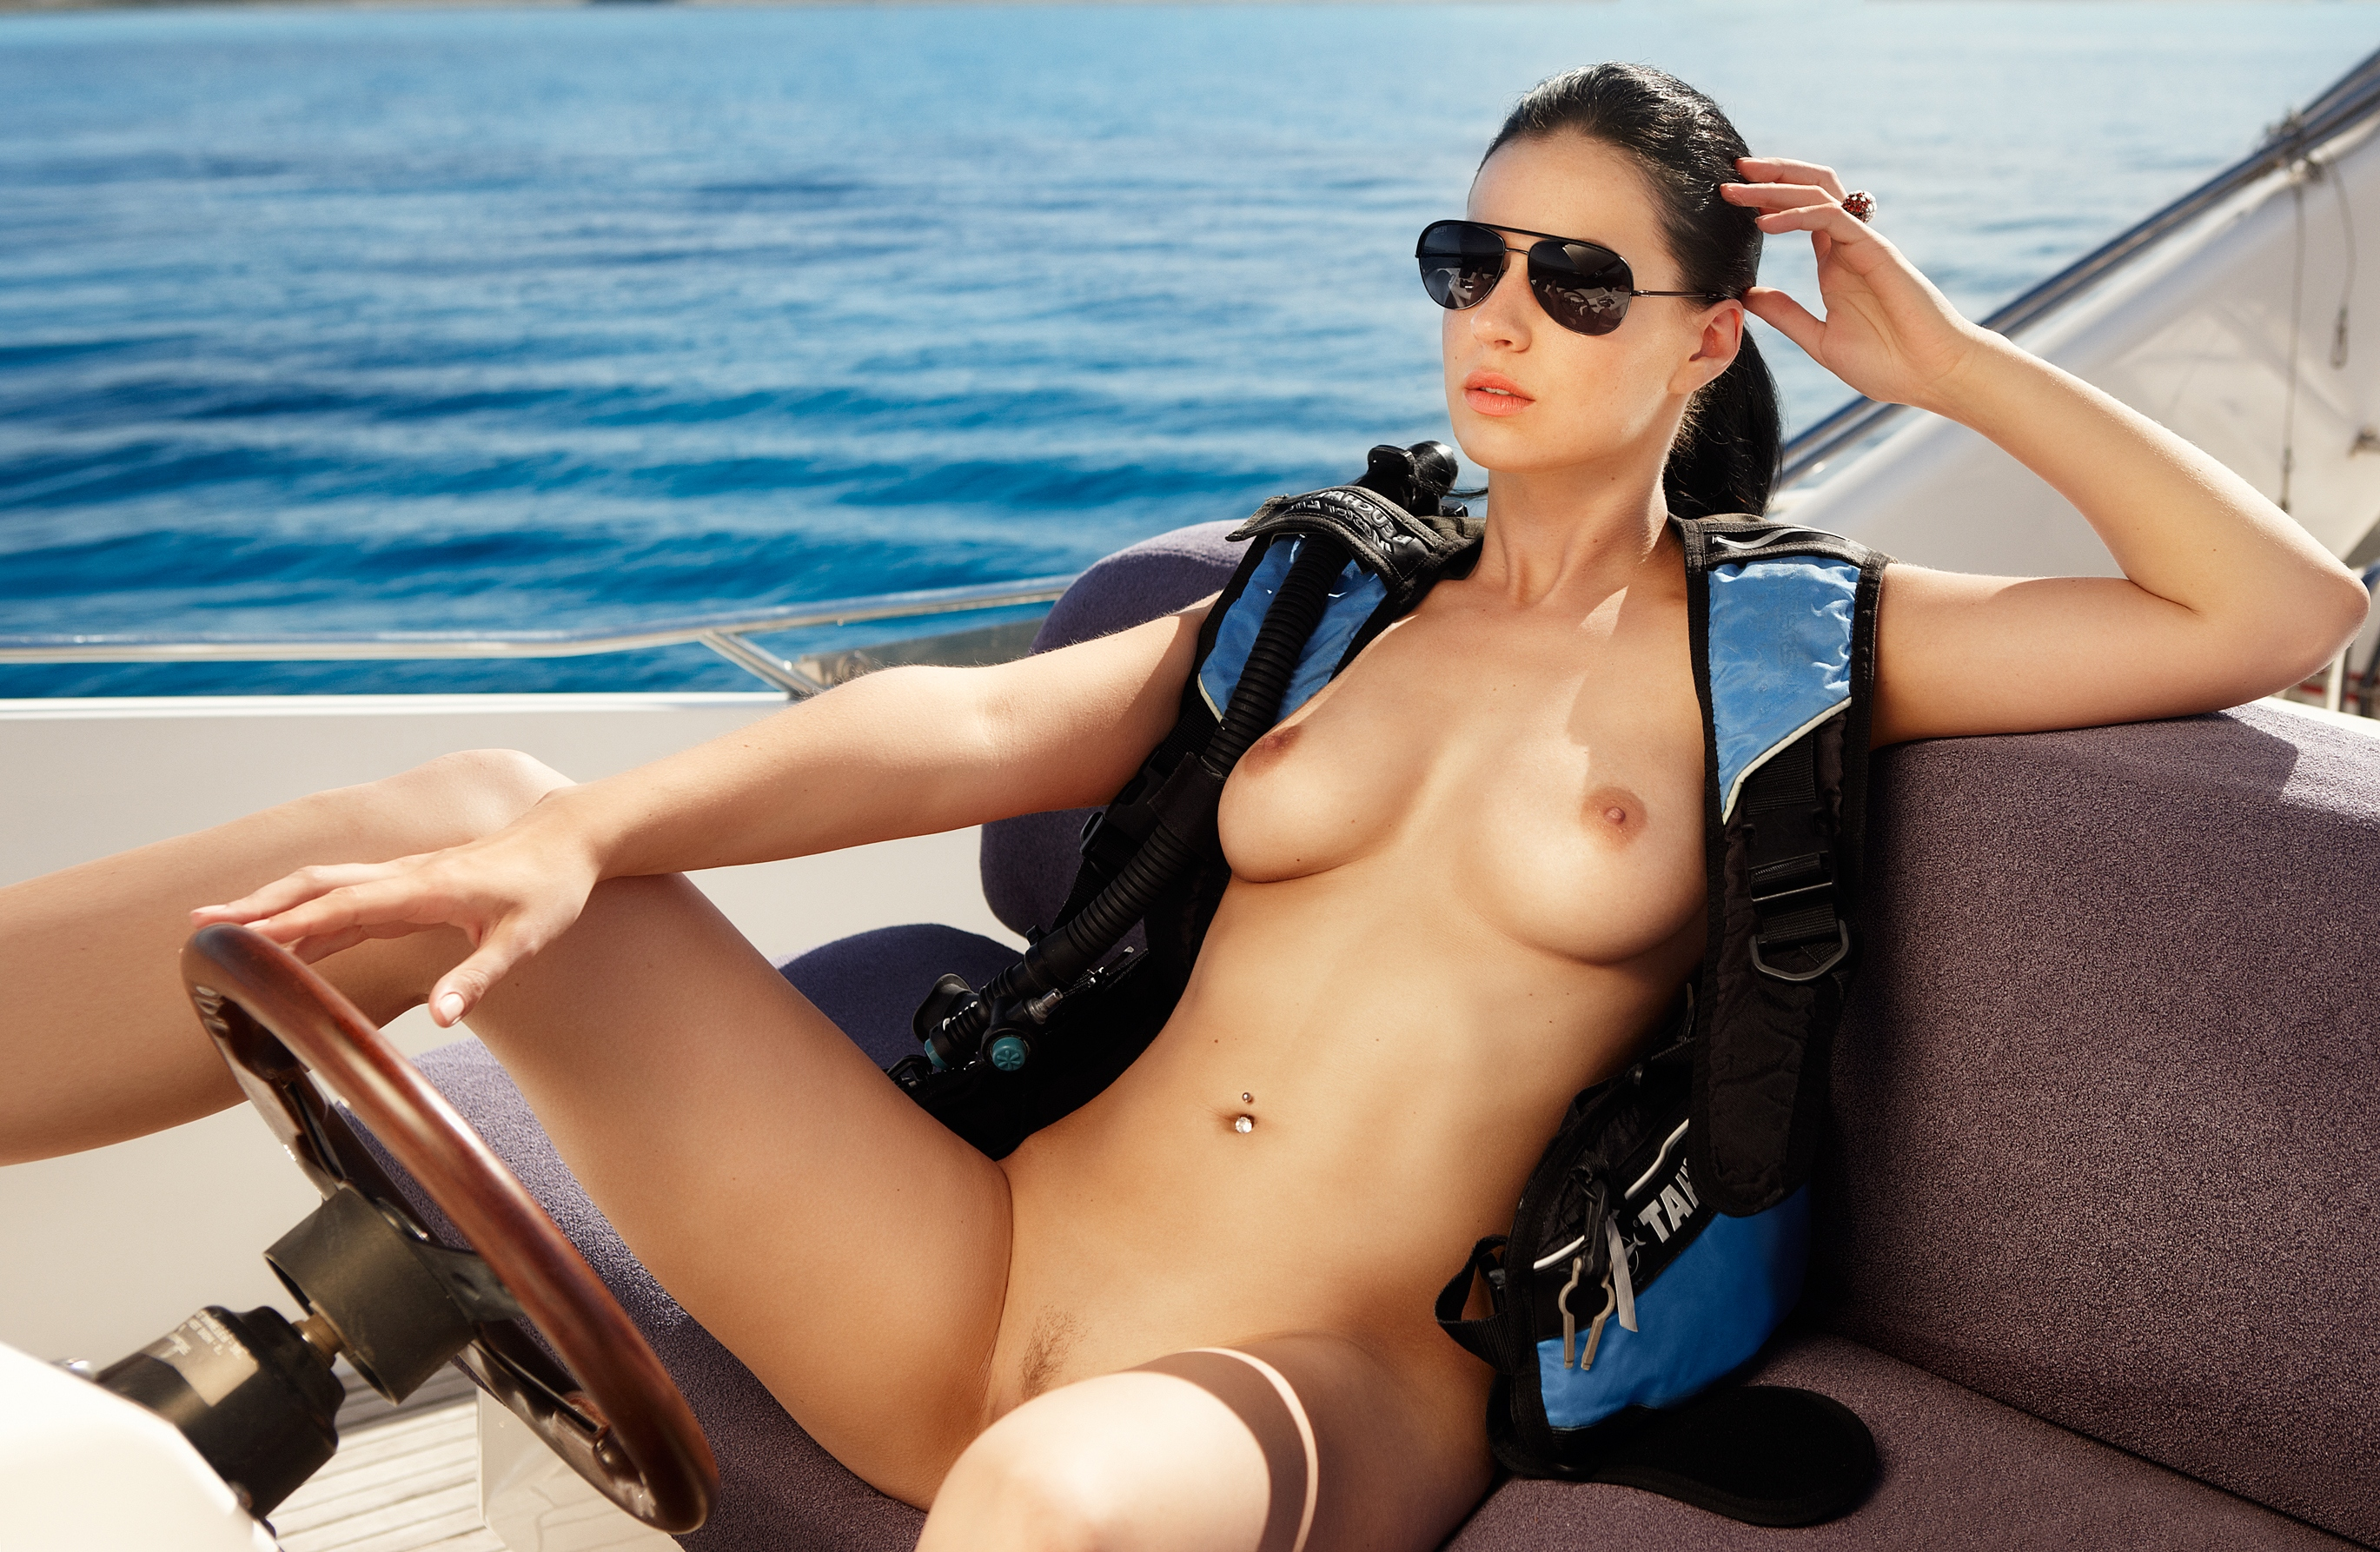 Recommend sexy girl on boat wallpaper All above